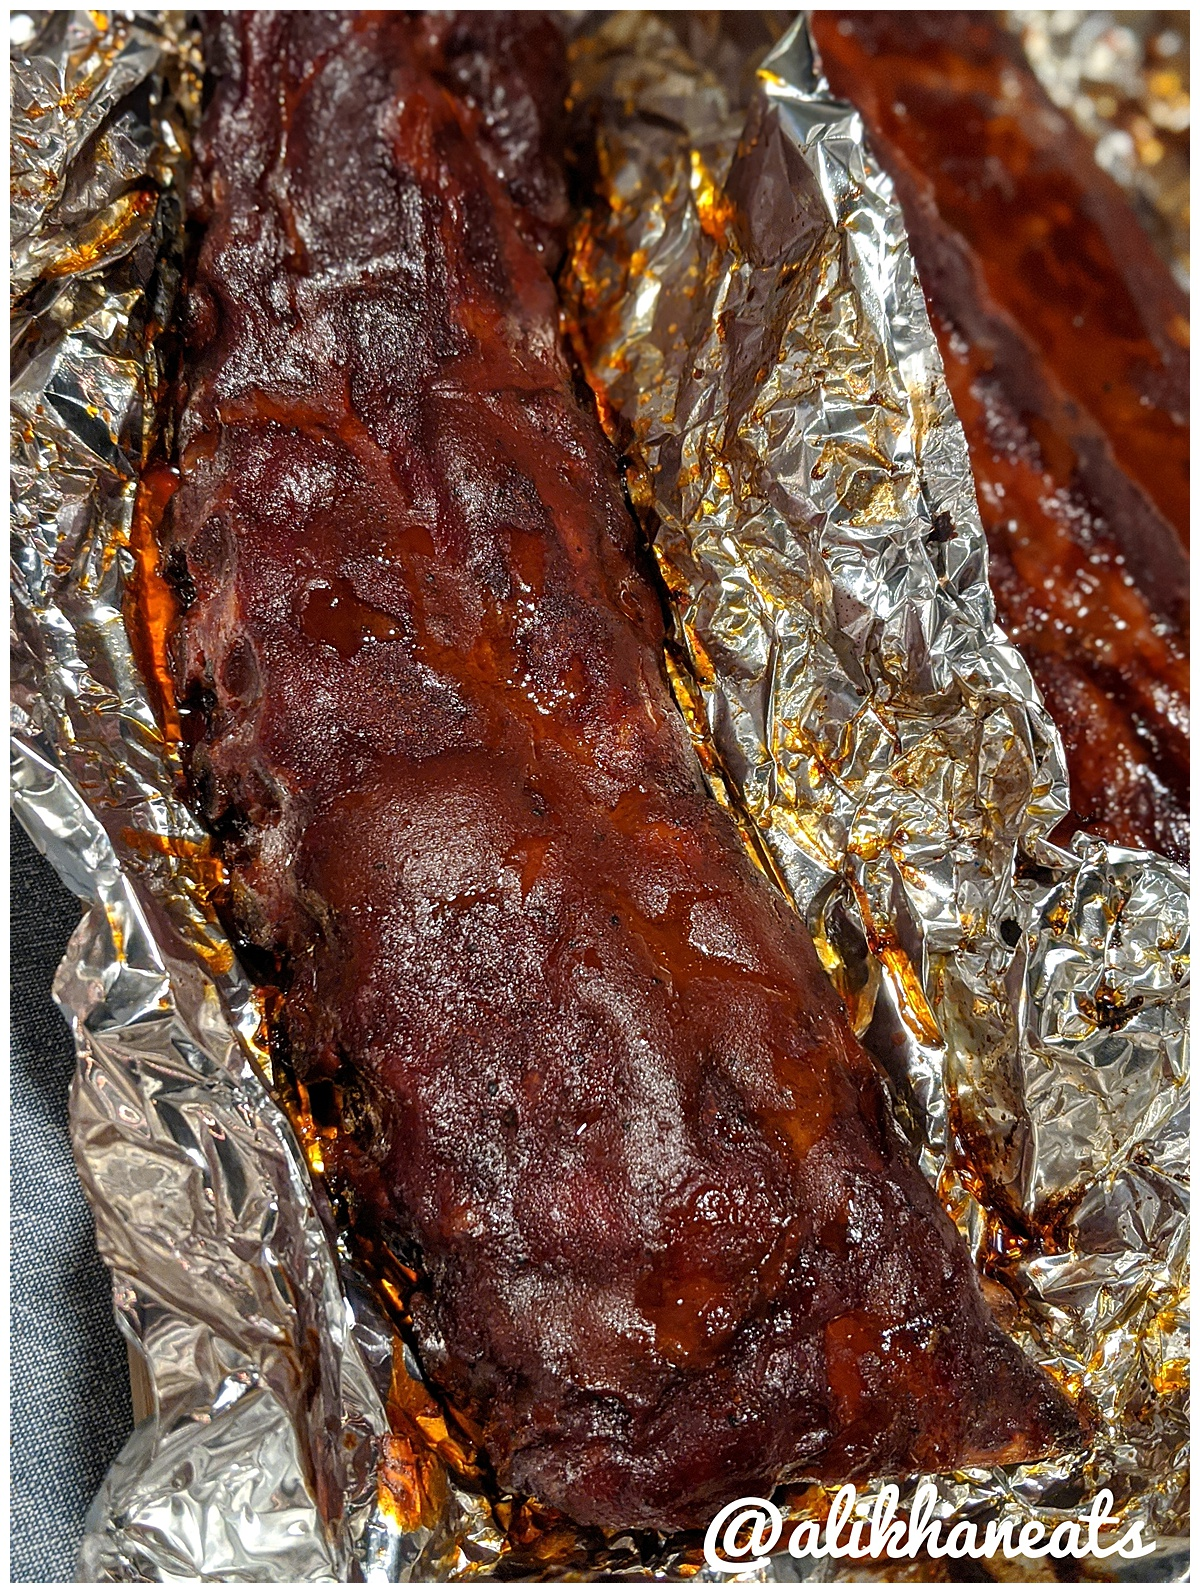 Traeger Baby Back Ribs Vol 2 sauced